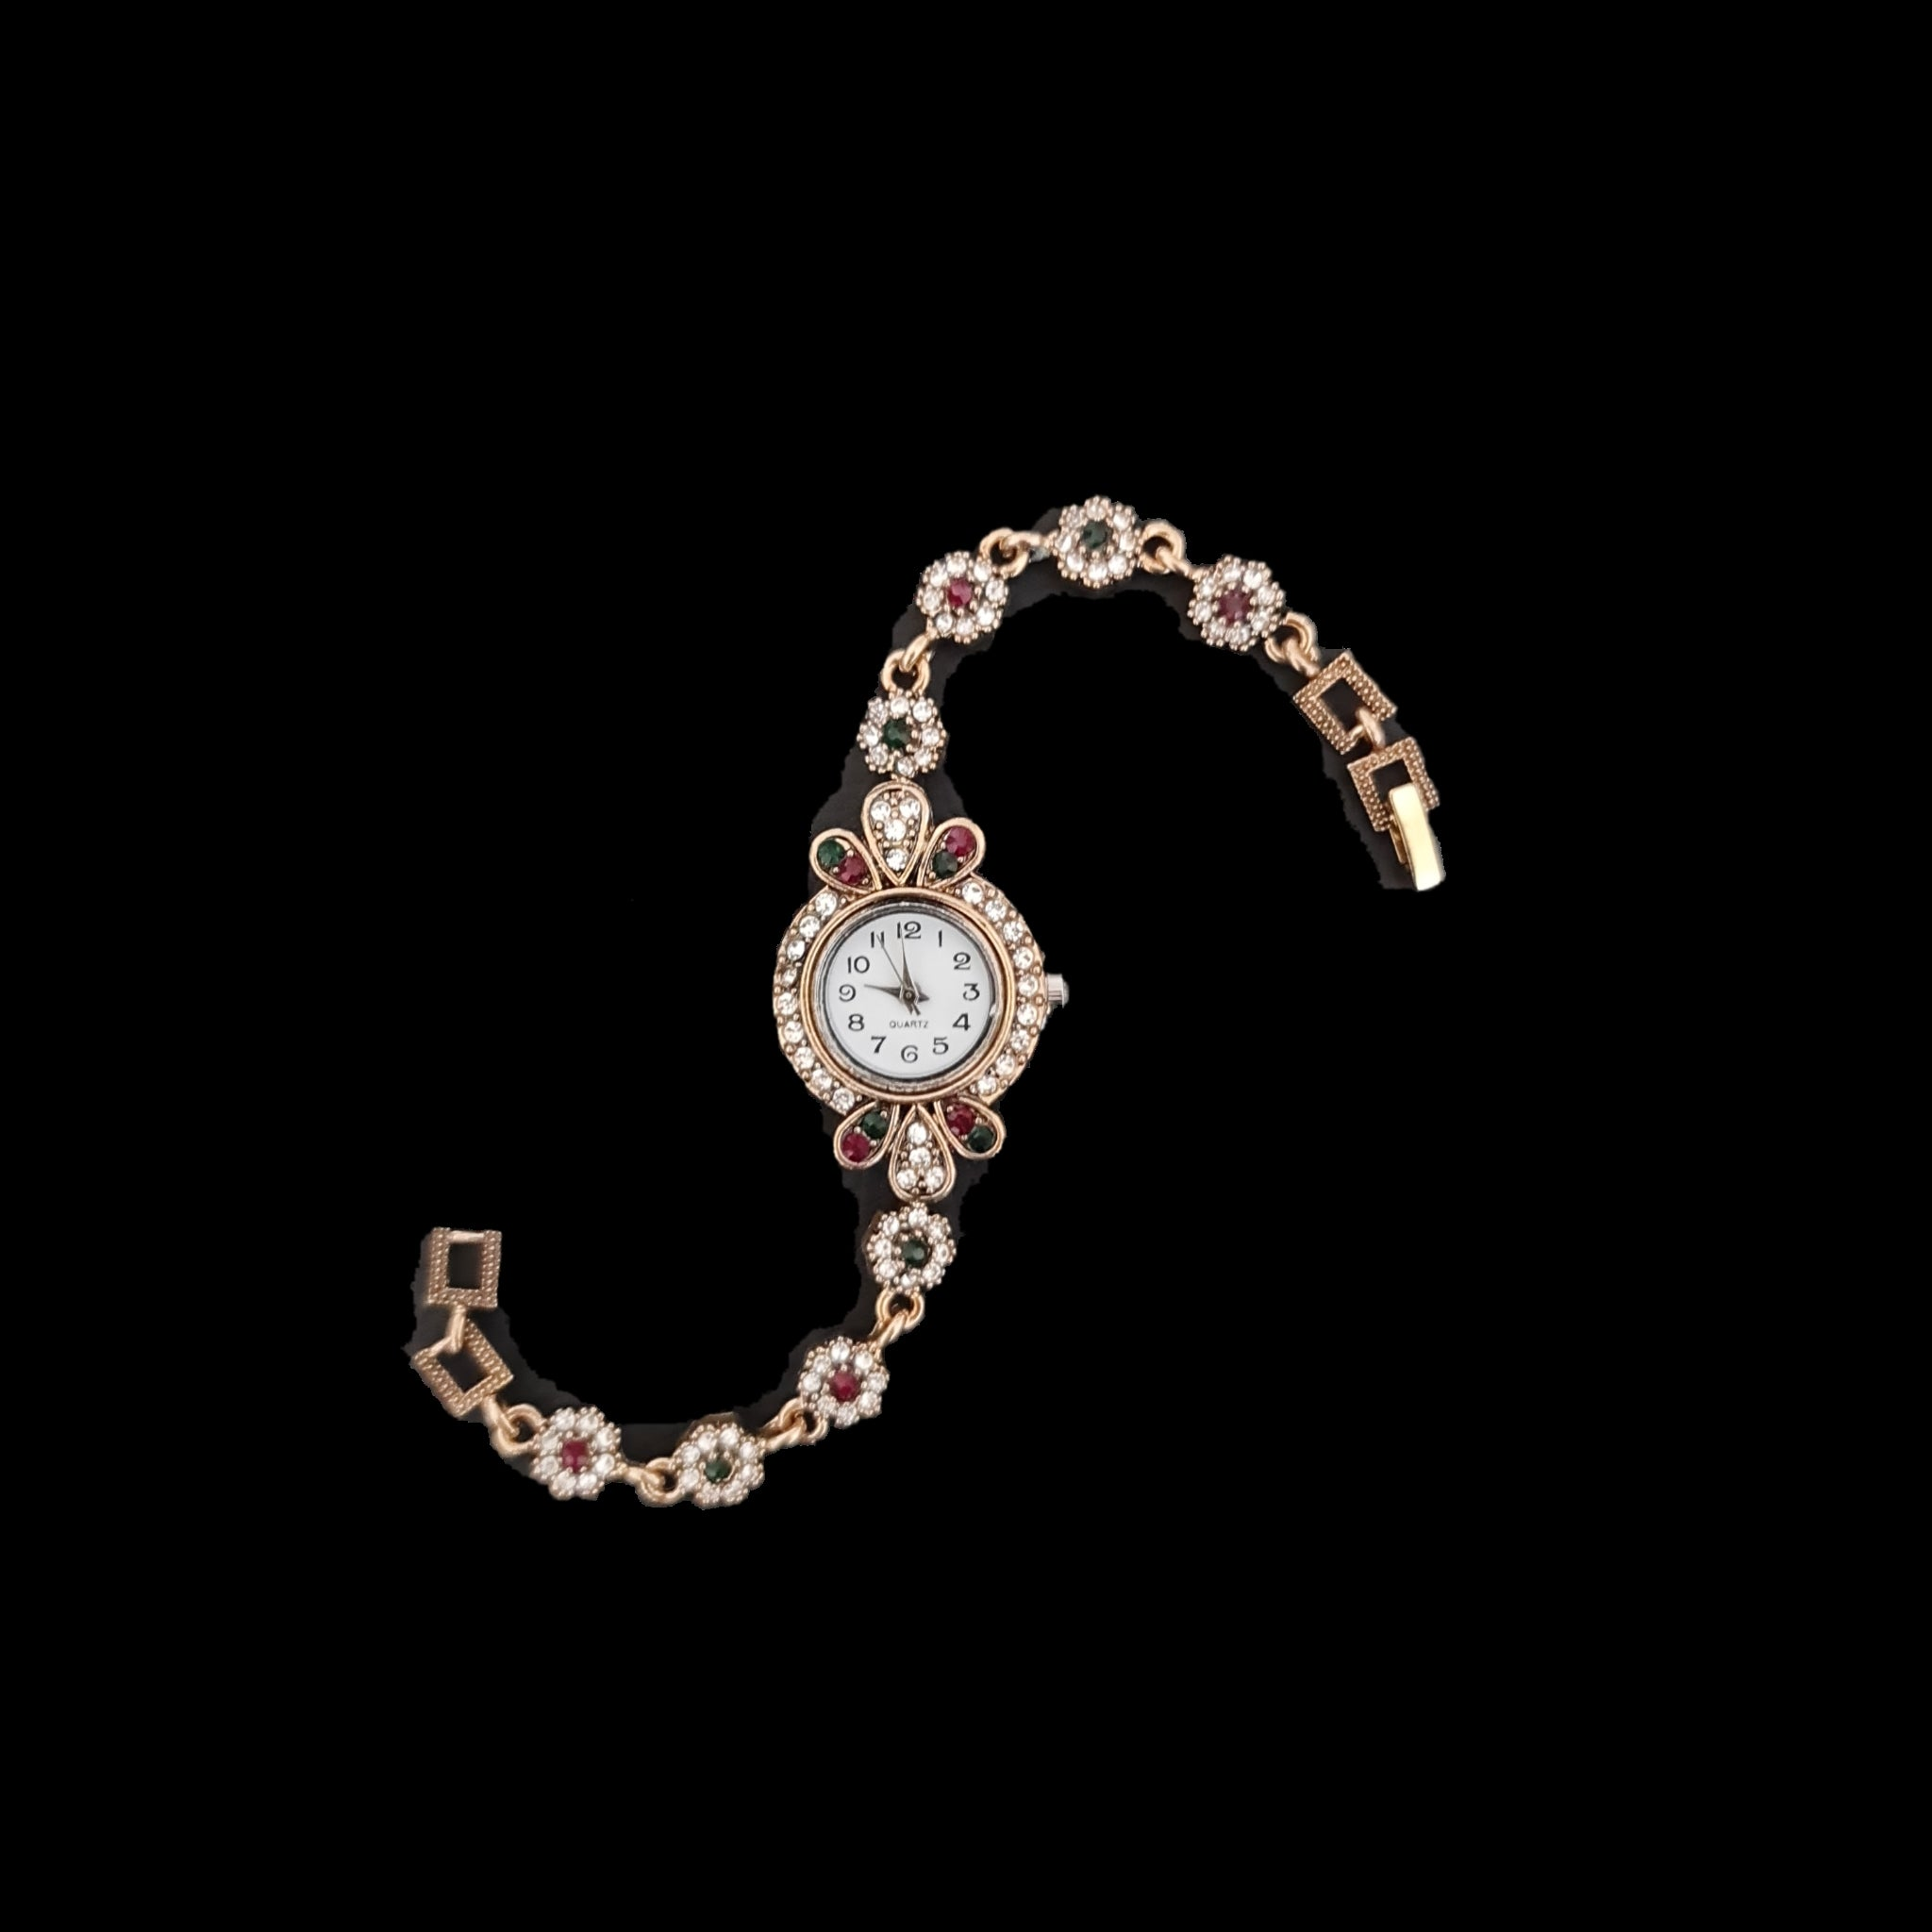 IYI Kayi Women's Jewellery Watch